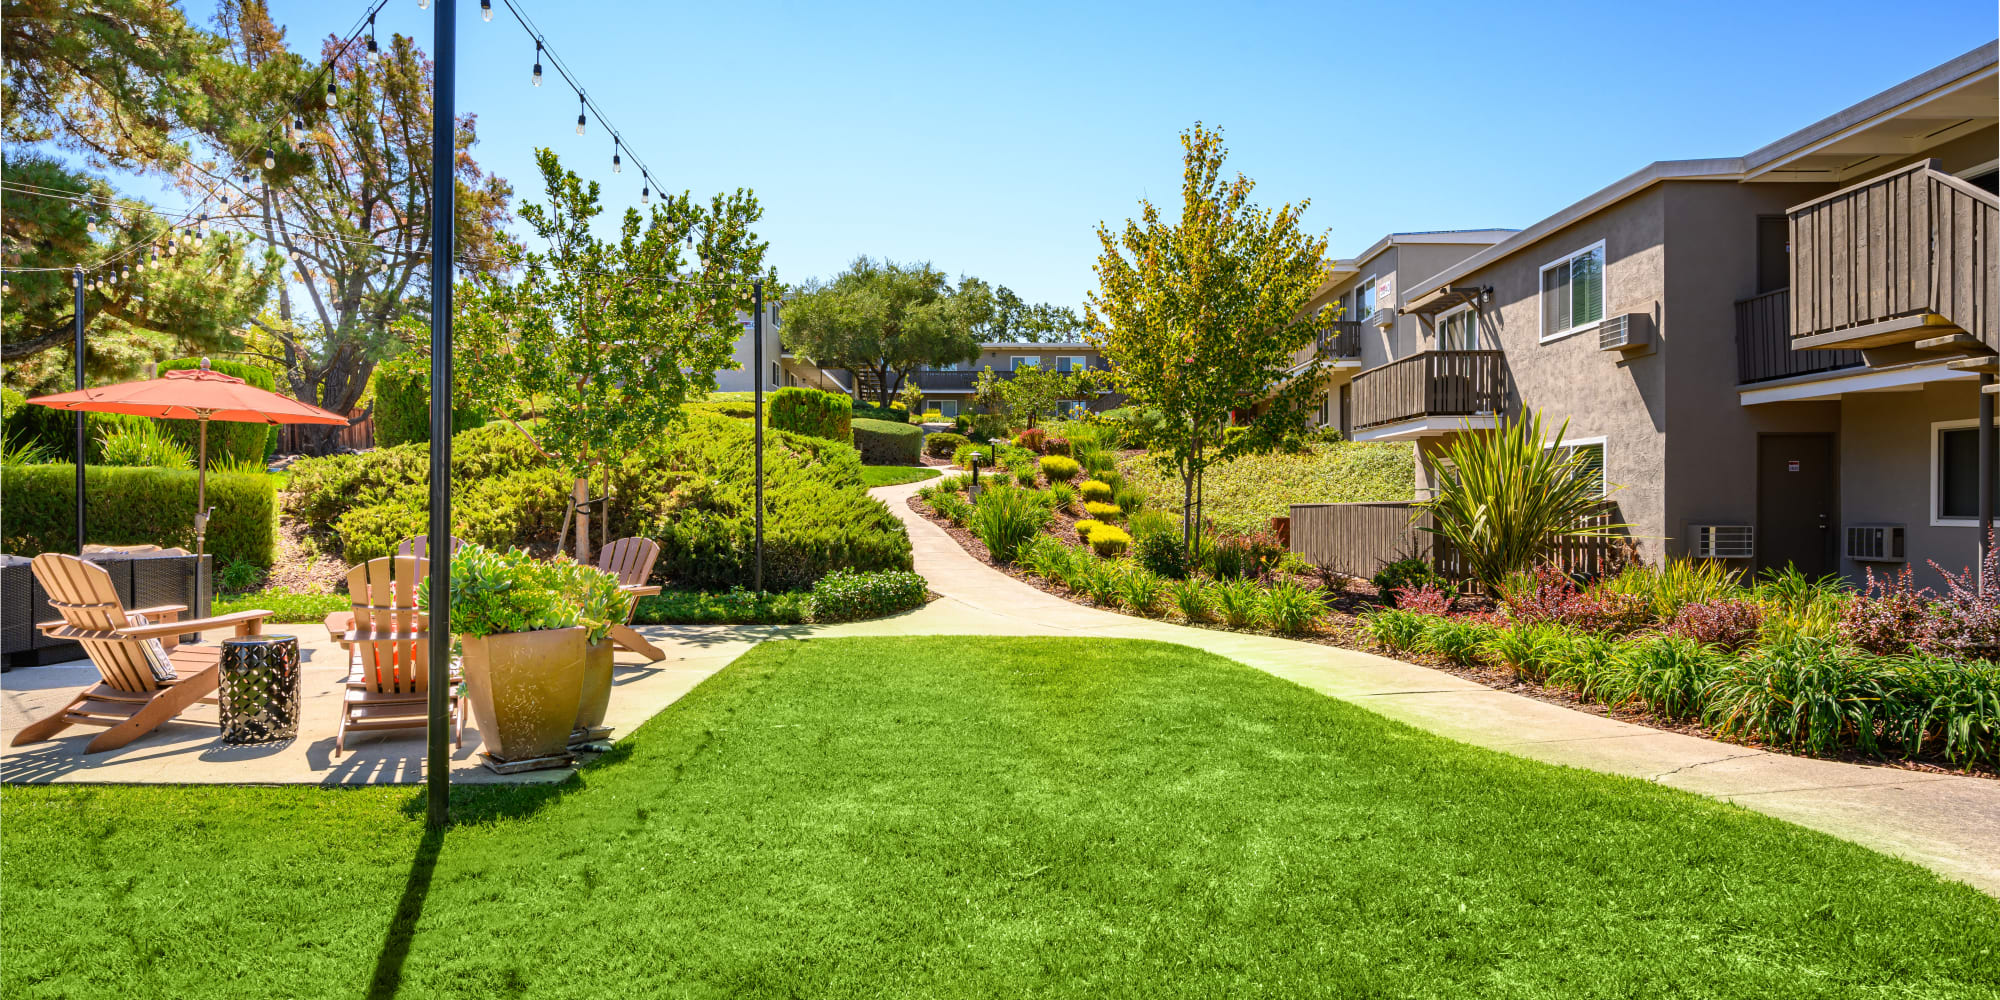 Scenic view of the community with grassy lawn and lounge area with umbrella at Pleasanton Heights in Pleasanton, California